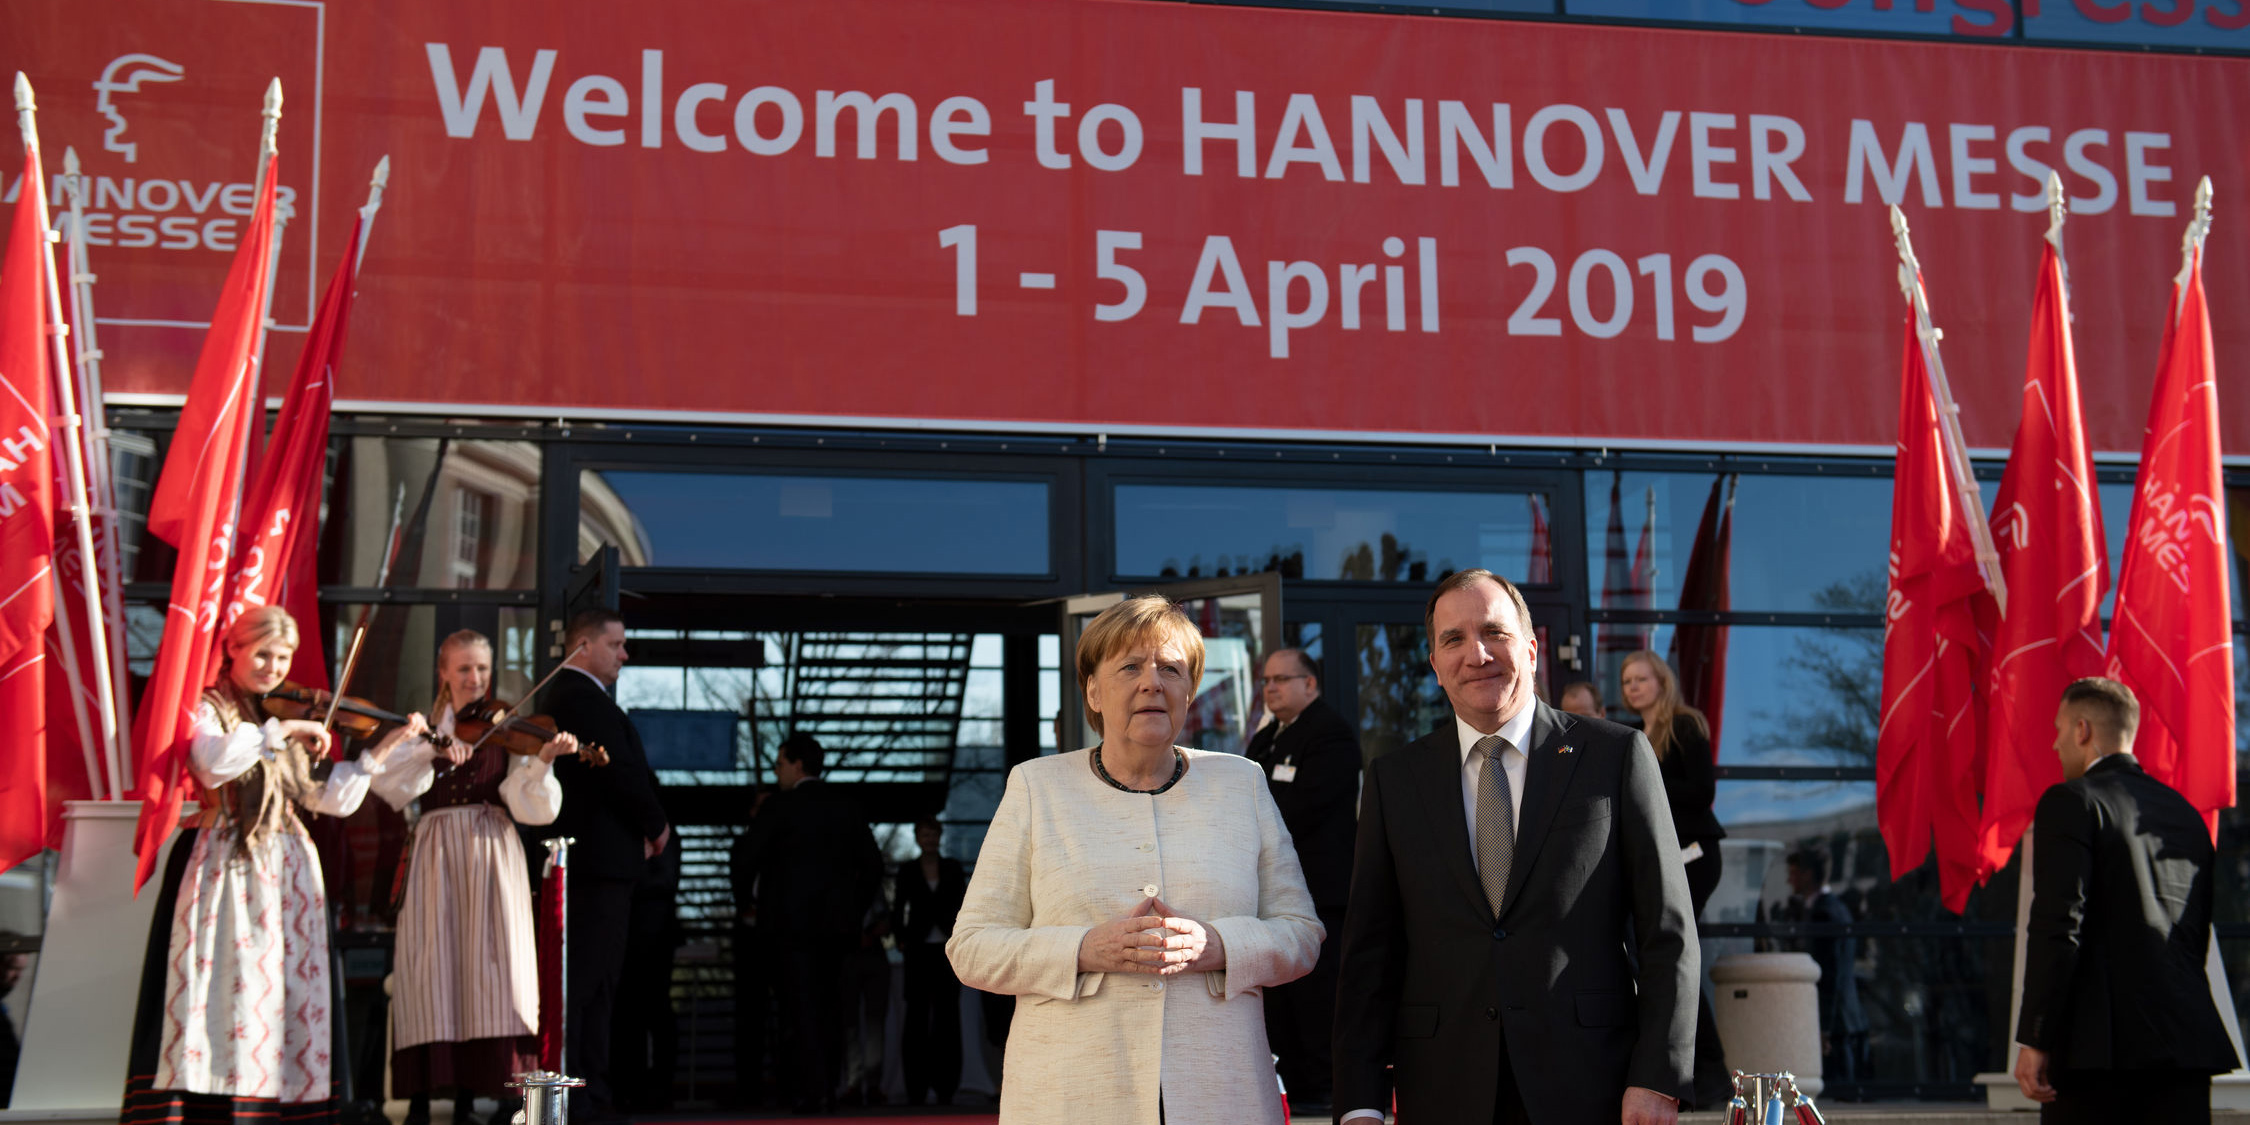 Opening Ceremony of HANNOVER MESSE, Sunday, March 31, 2019, Hannover Congress Centrum Photo with: H.E. Stefan Löfven, Prime Minister of Sweden and Dr. Angela Merkel, Chancellor of the Federal Republic of Germany. Photo: Hannover Messe.